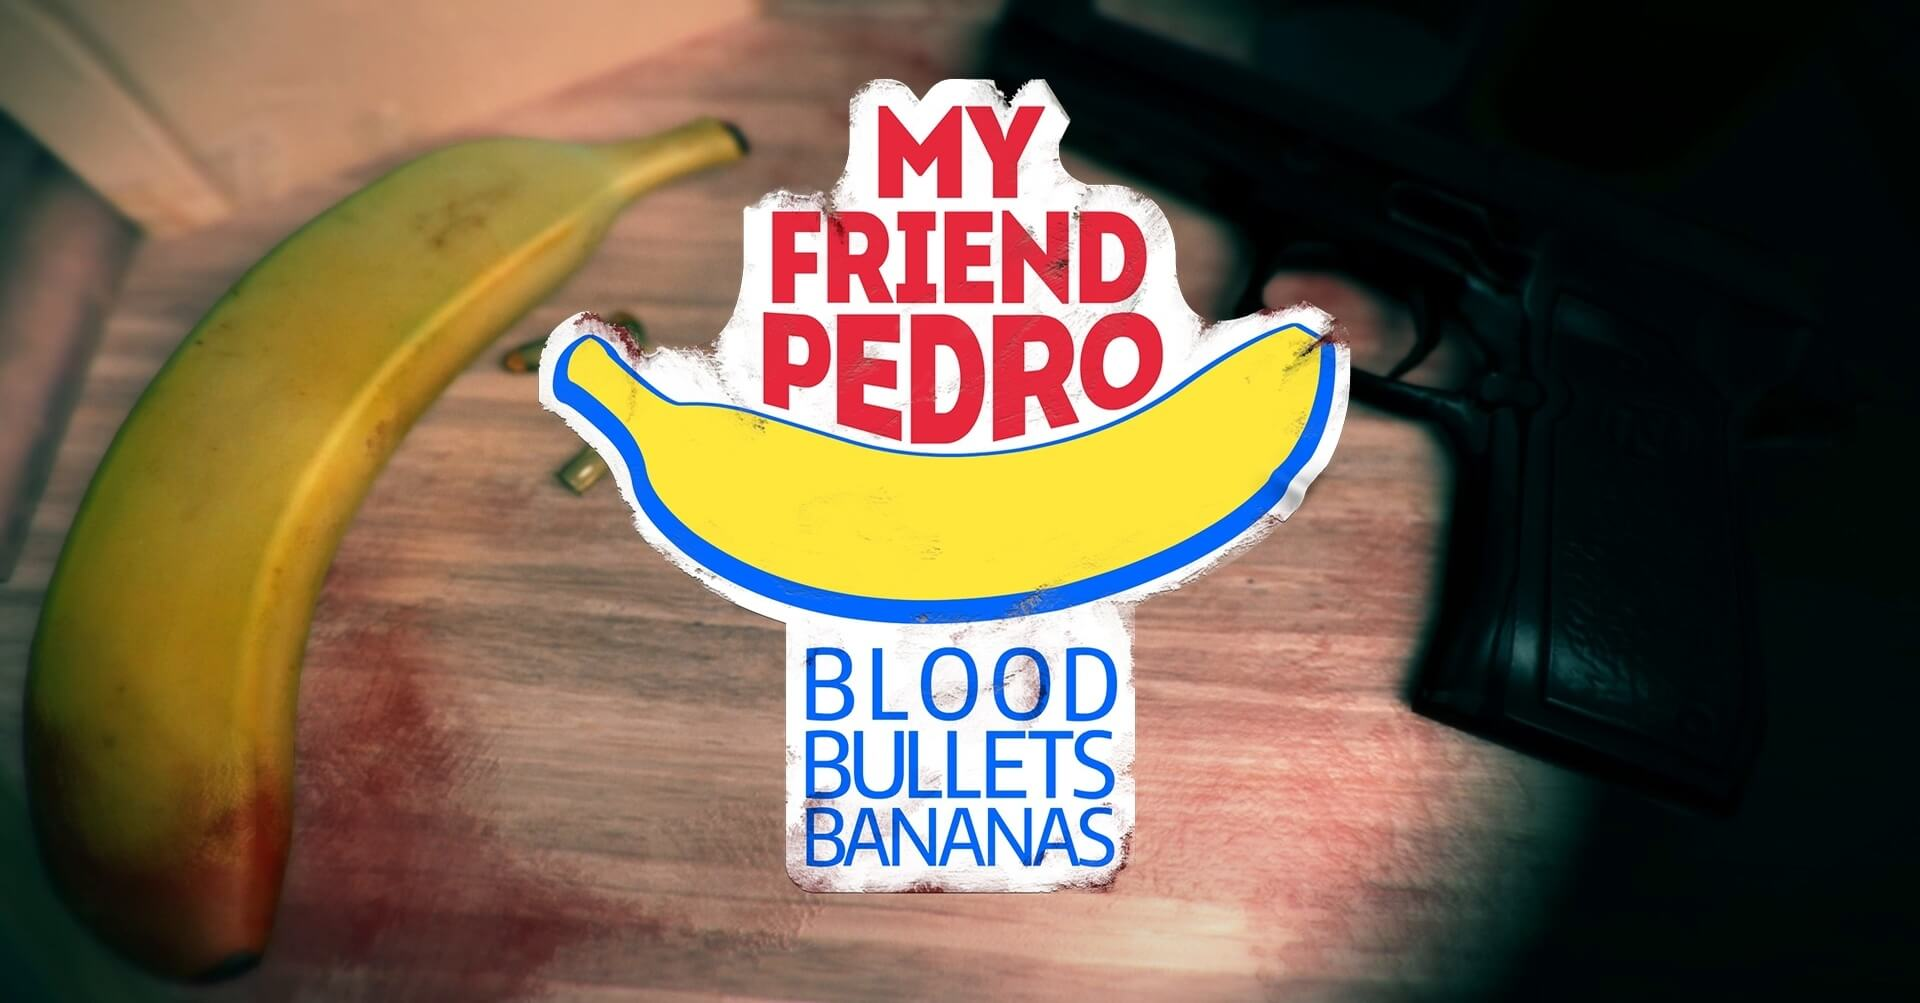 my friend pedro image 1 - E3 2018: Commit Genocide In The Name Of A Banana In MY FRIEND PEDRO